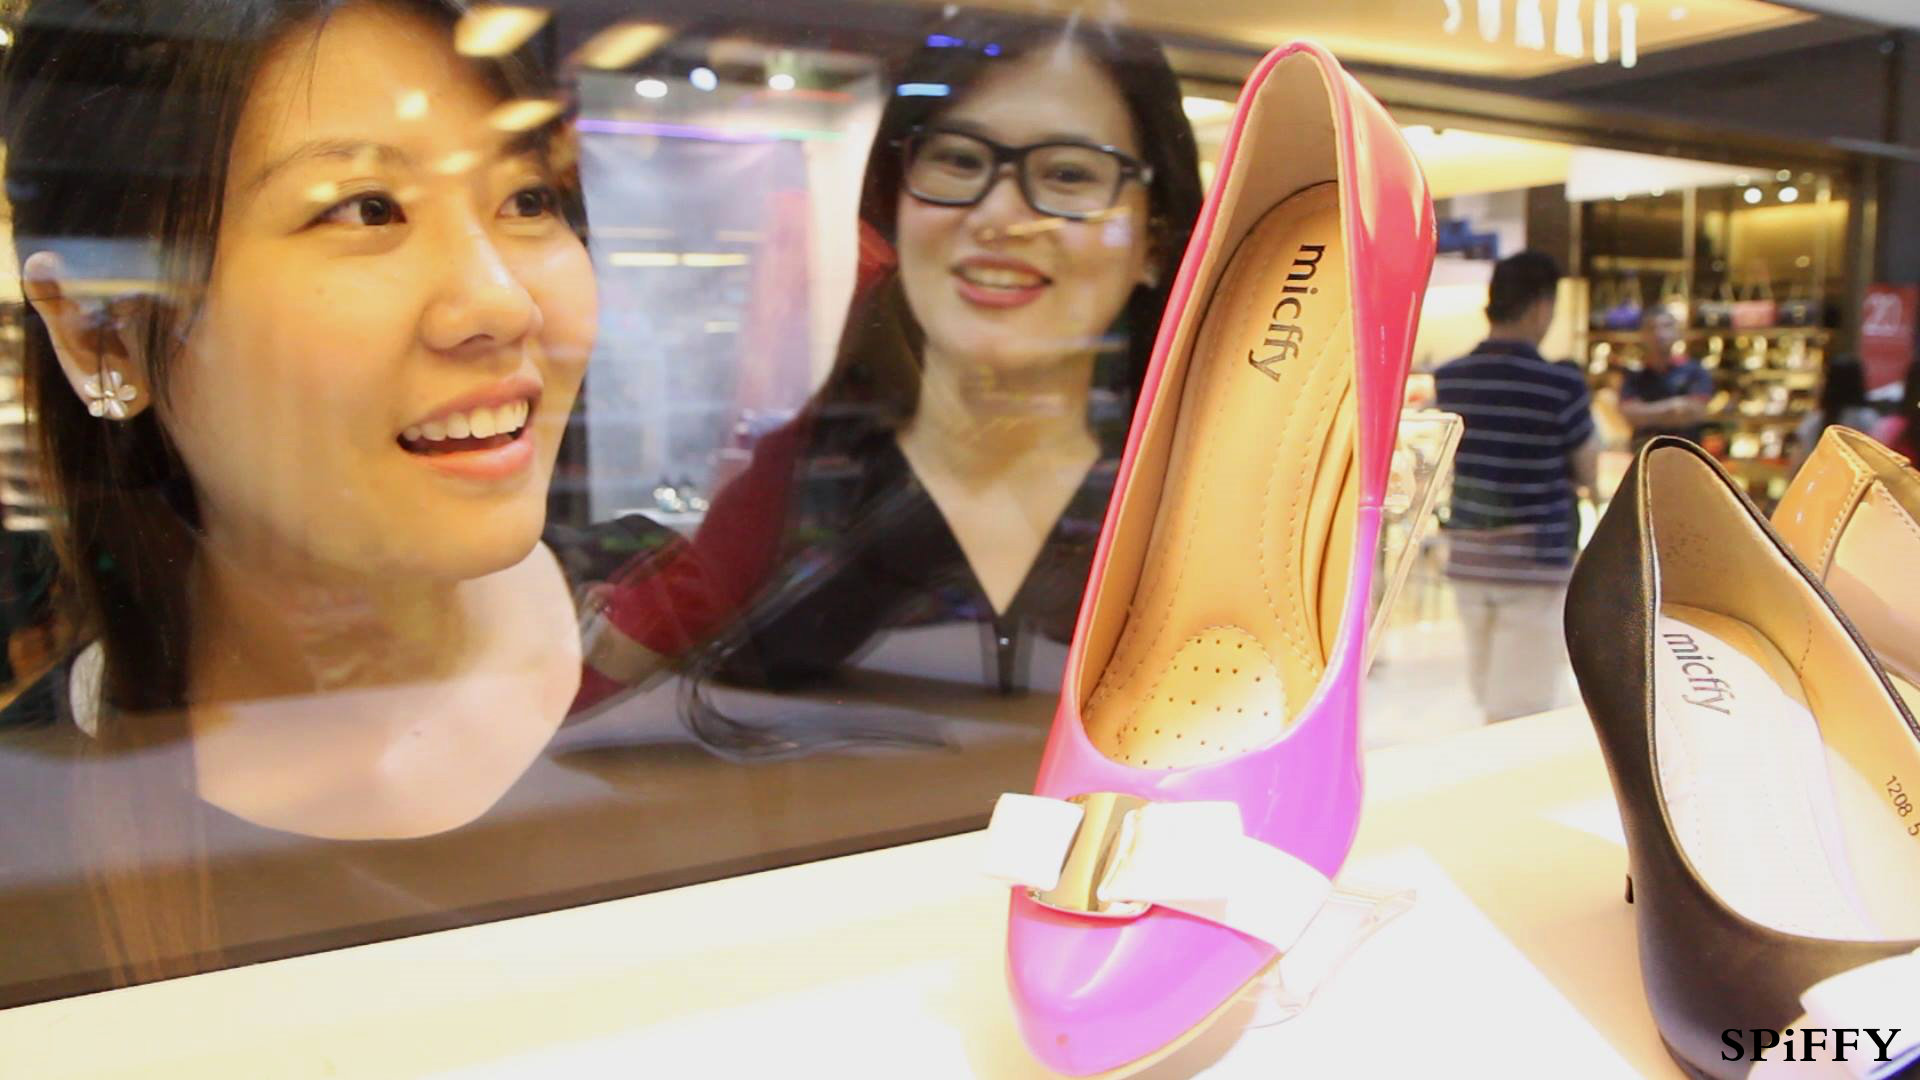 Spiffy Shoes Sales Malaysia for With You Club Members 家人 是一輩子的陪伴 - 陪伴 Accompany - 微電影 Spiffy Shoes Present Spiffy Shoes Jan 2015 A03